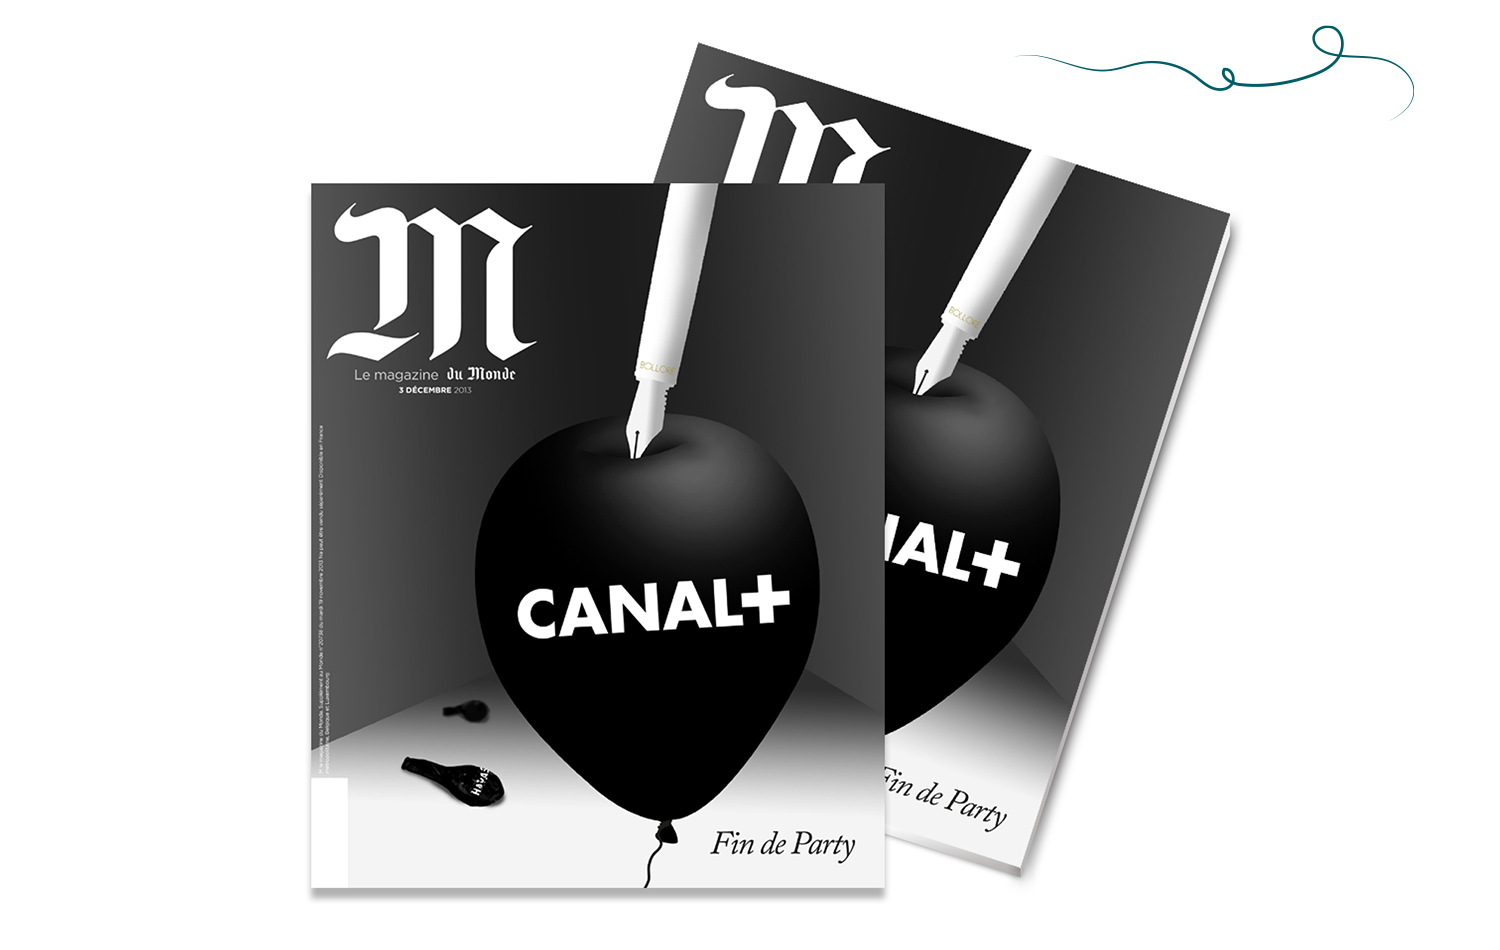 Canal+ Bollore